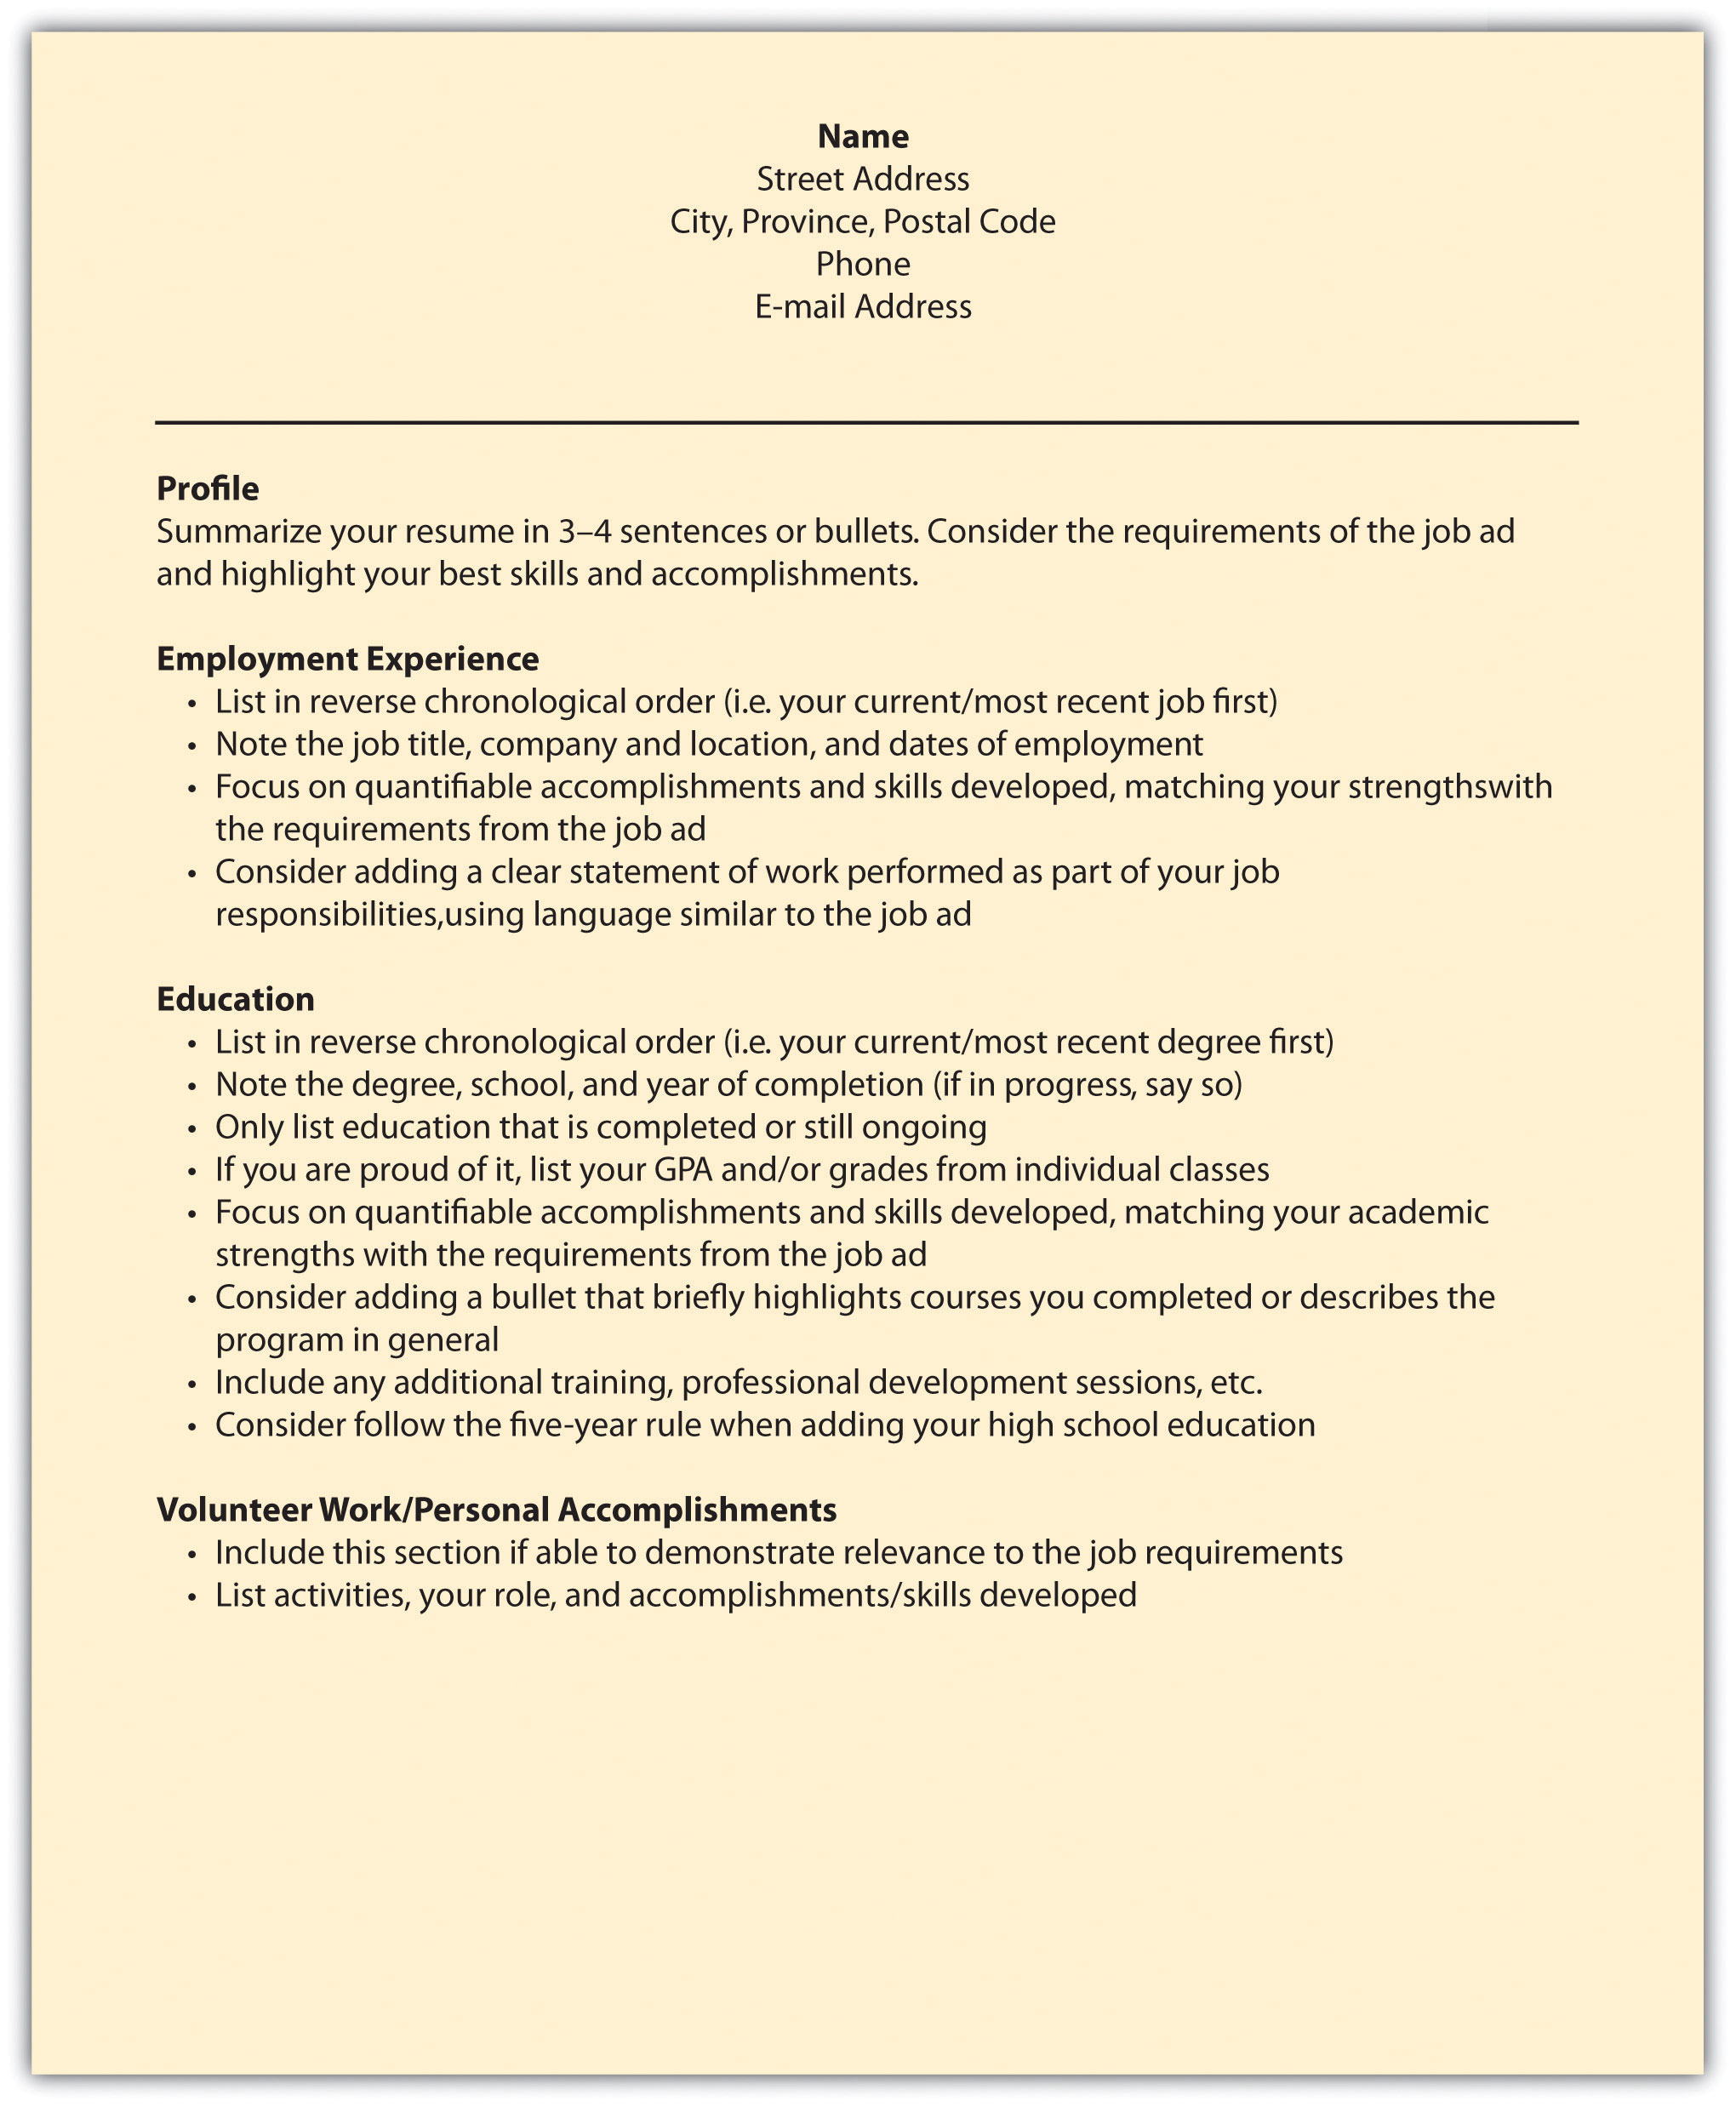 teamwork skills for resume teamwork skills for resume 2119